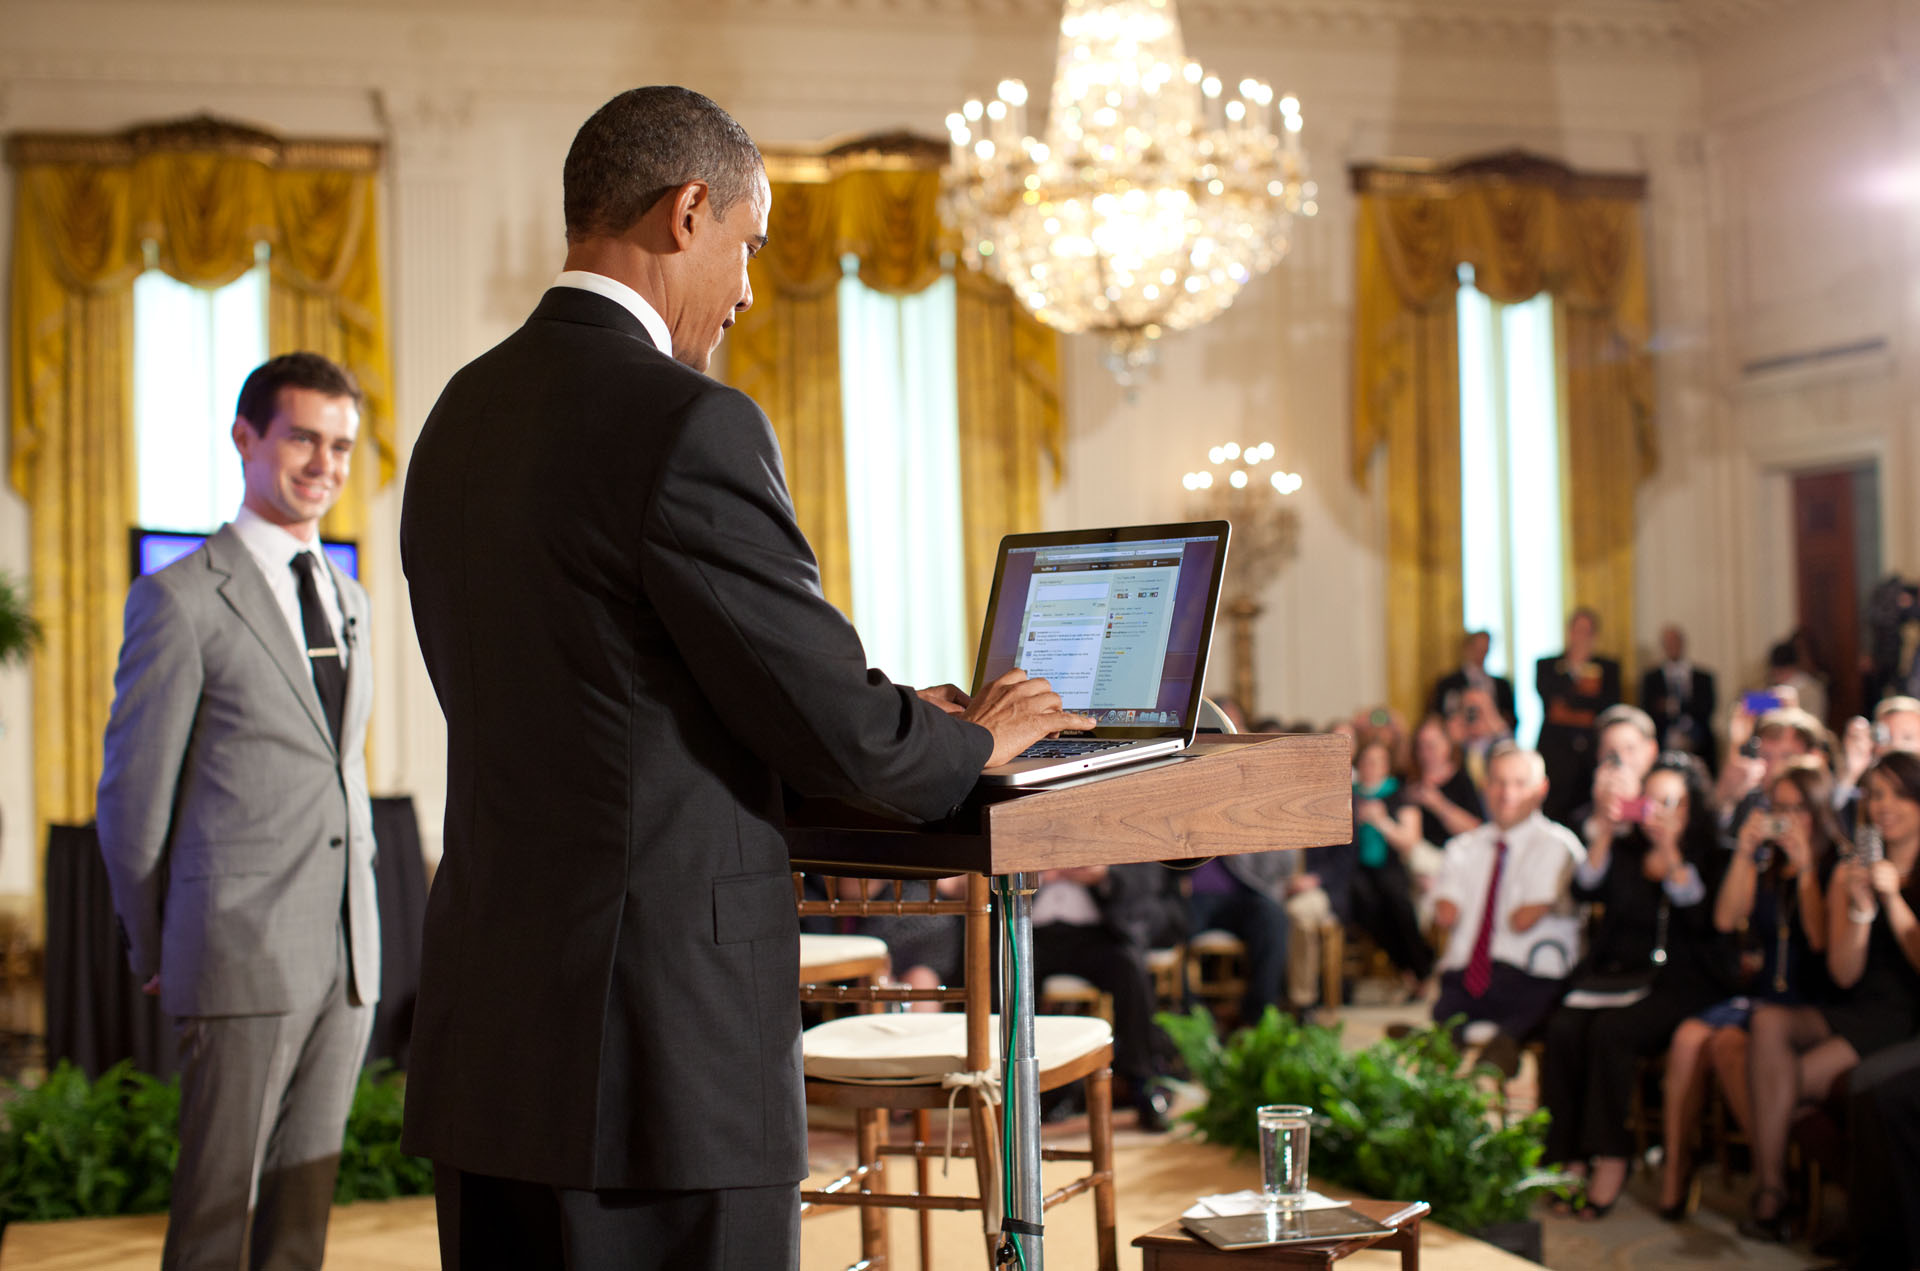 President Obama Tweets a Question During the Twitter Town Hall